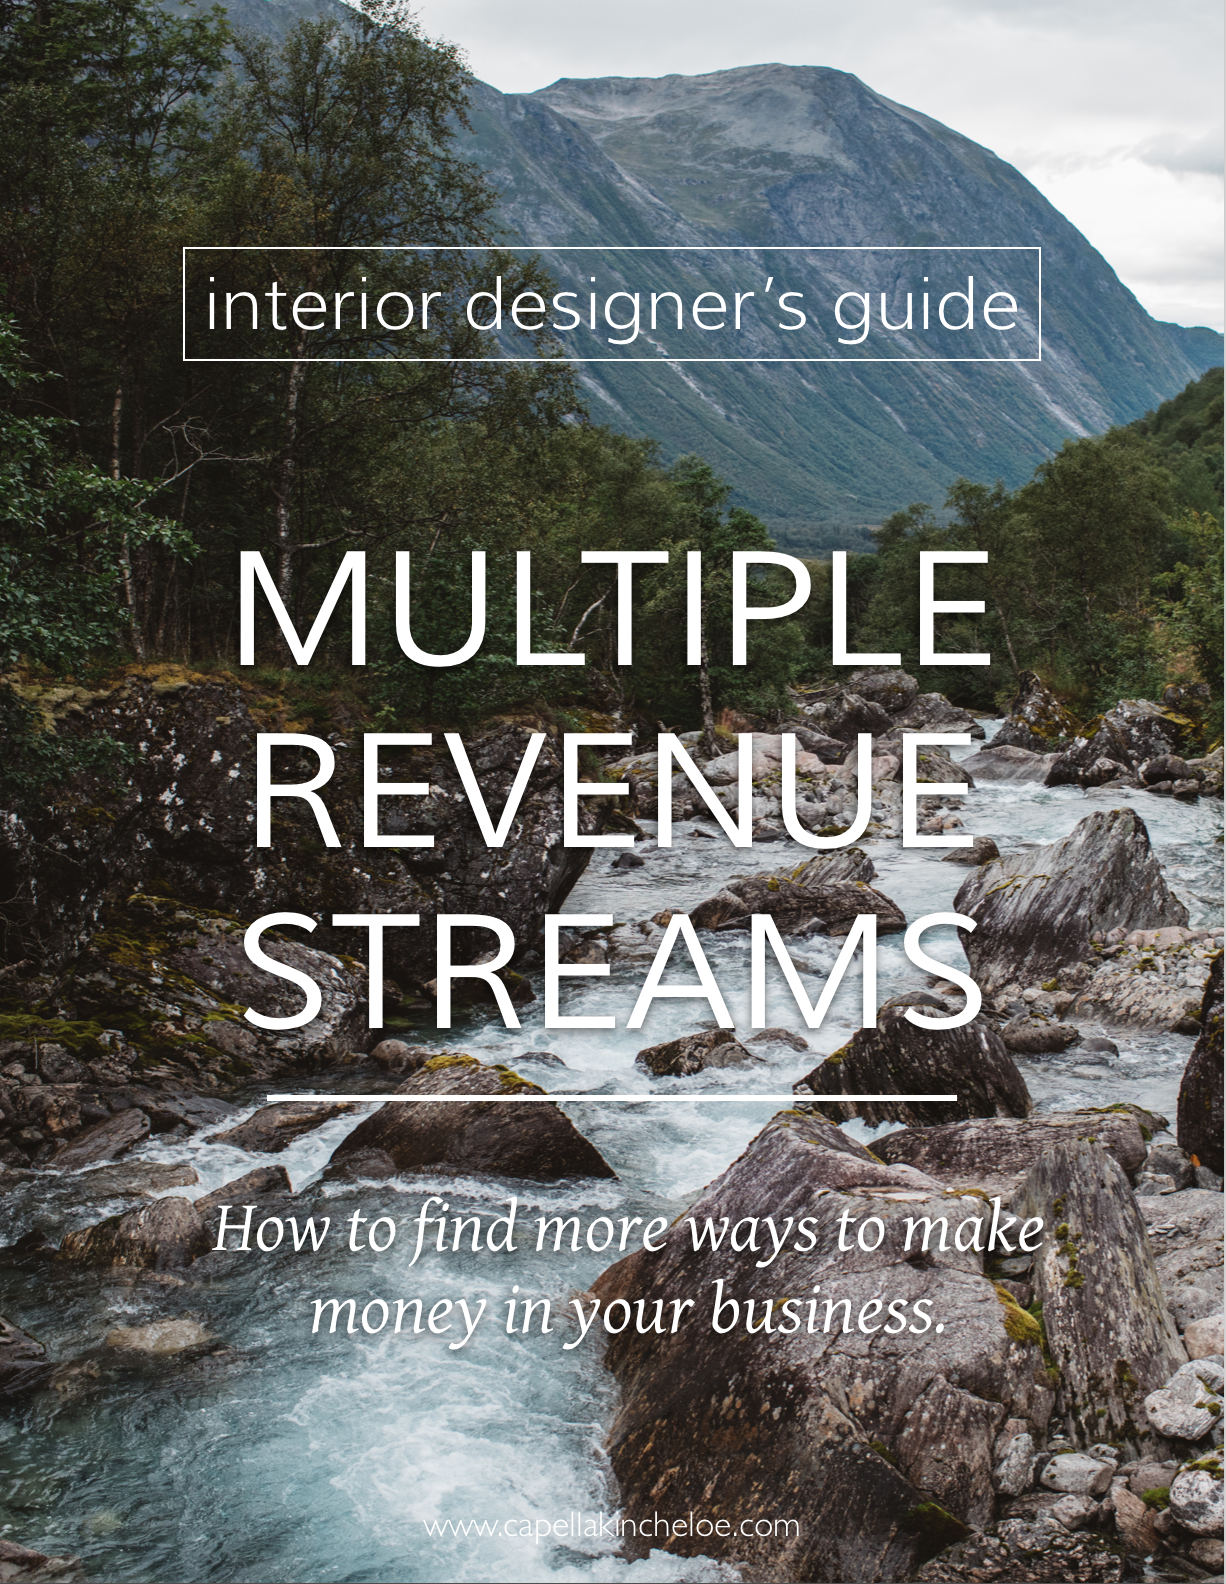 Want to diversify your interior design business? Here are multiple ways to make more money.